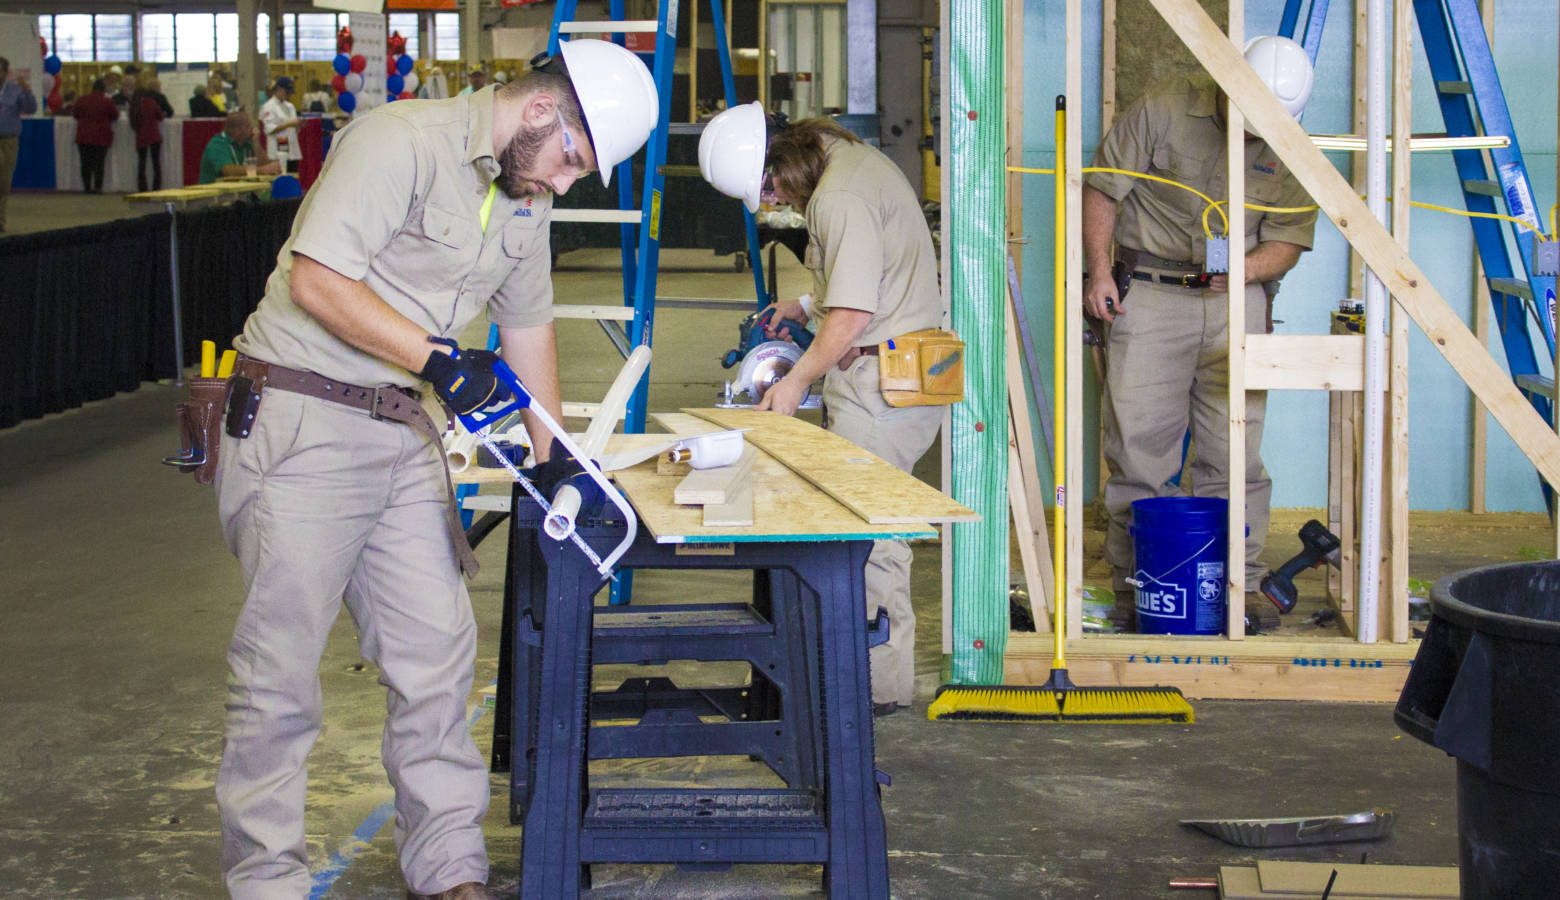 Students from around the nation compete each year in job skills contests at the SkillsUSA national competition, pictured here. (Peter Balonon-Rosen/IPB News)